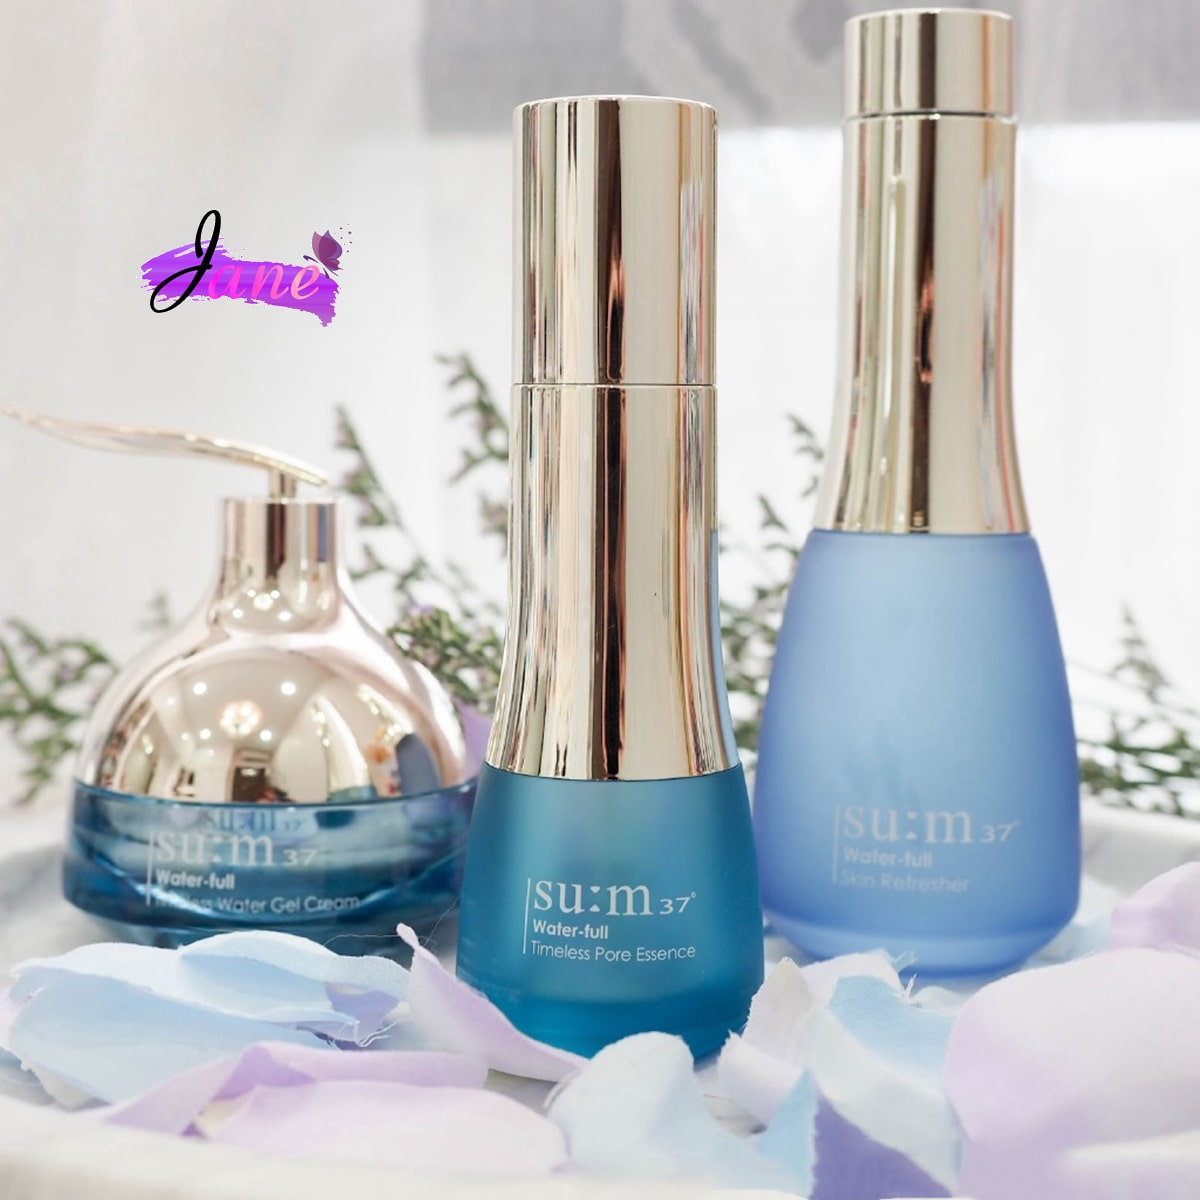 Sum37 Water Full Timeless Pore Essence